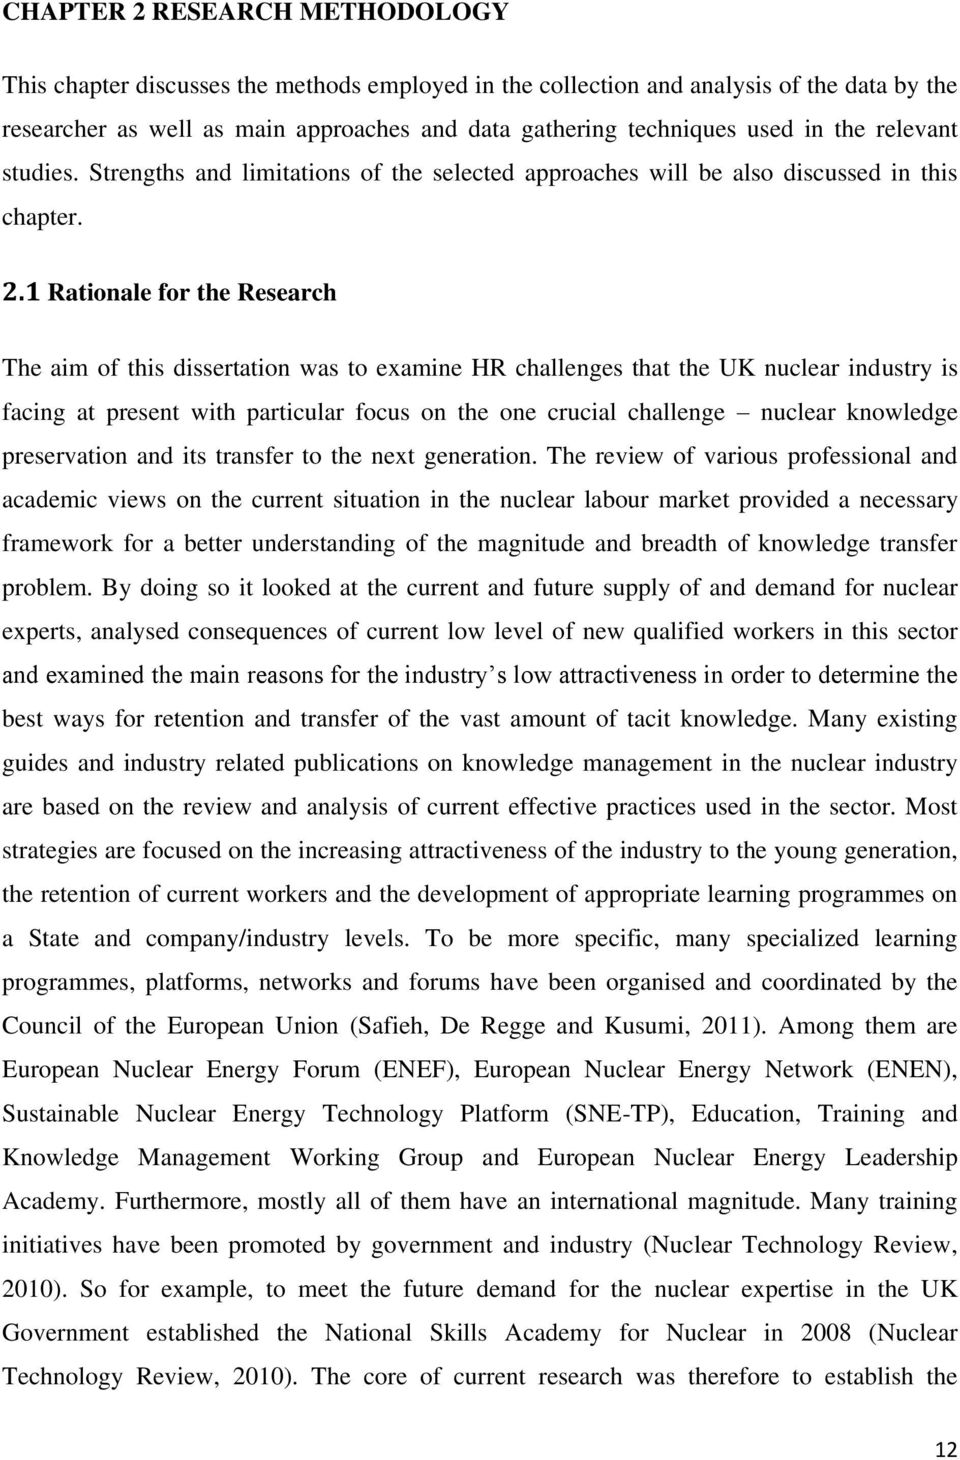 1 Rationale for the Research The aim of this dissertation was to examine HR challenges that the UK nuclear industry is facing at present with particular focus on the one crucial challenge nuclear